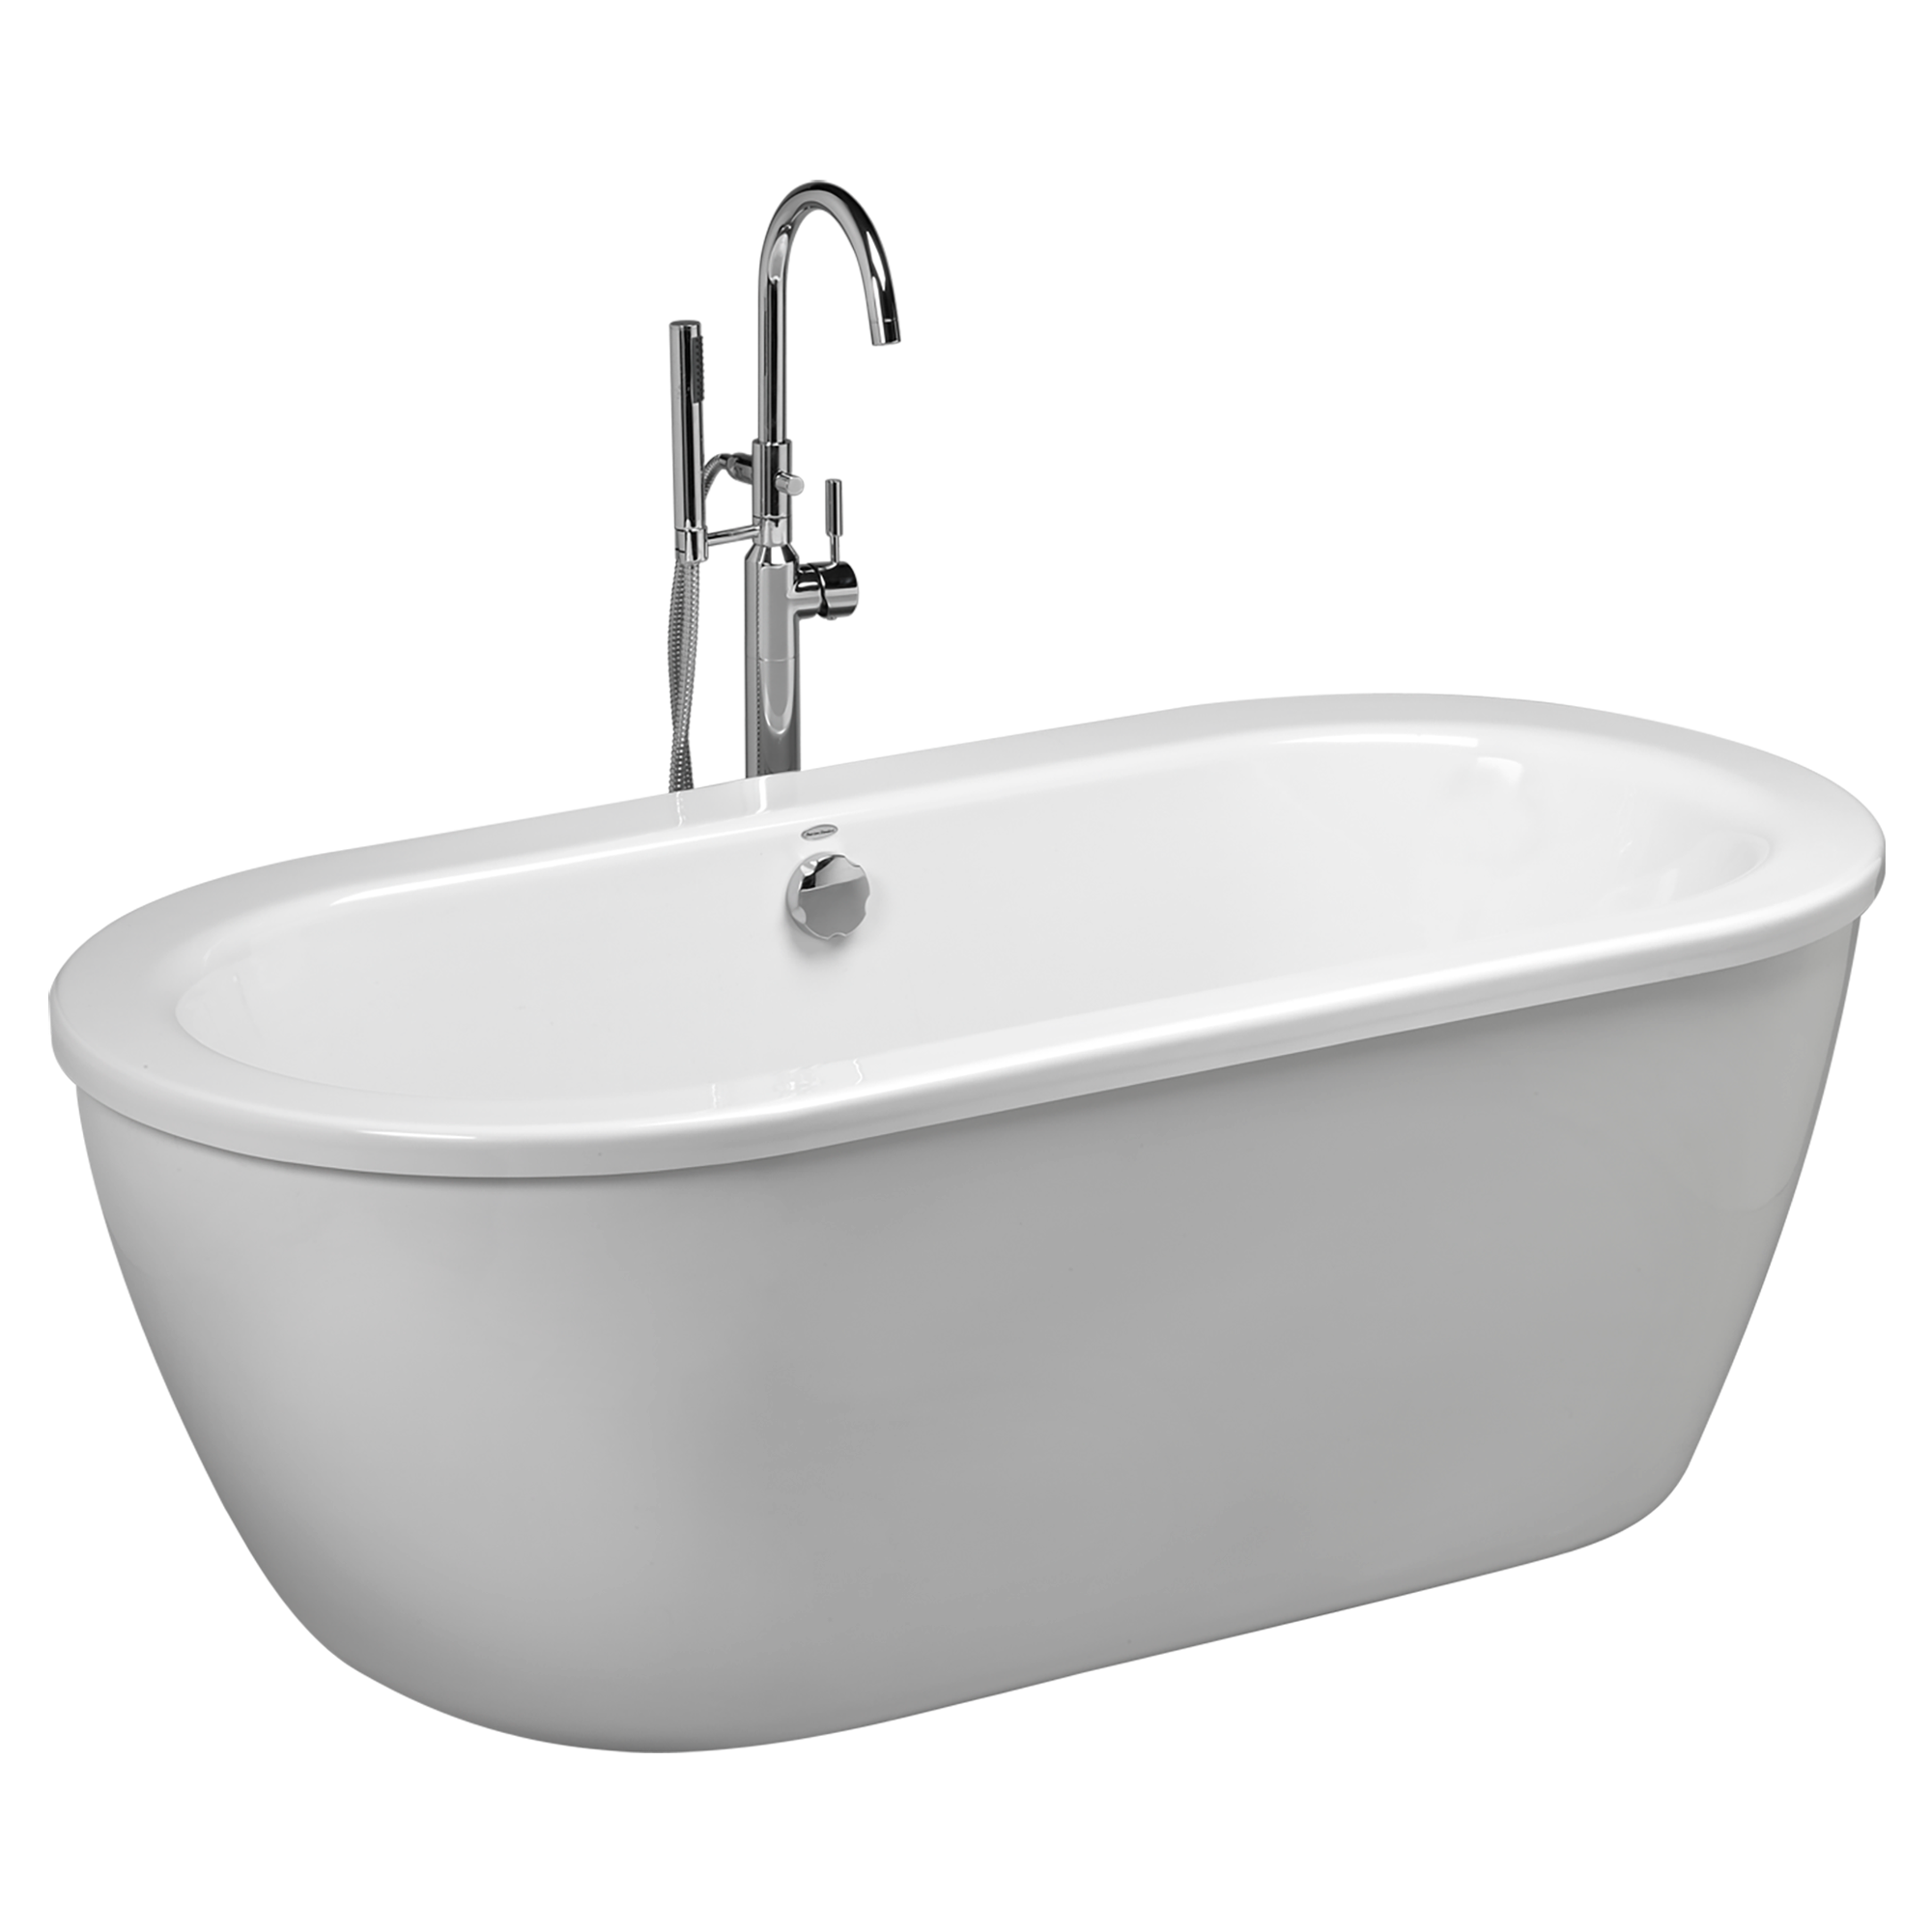 Stand Alone Tub. Cream Marble Undermount Whirlpool Two Person Tub ...